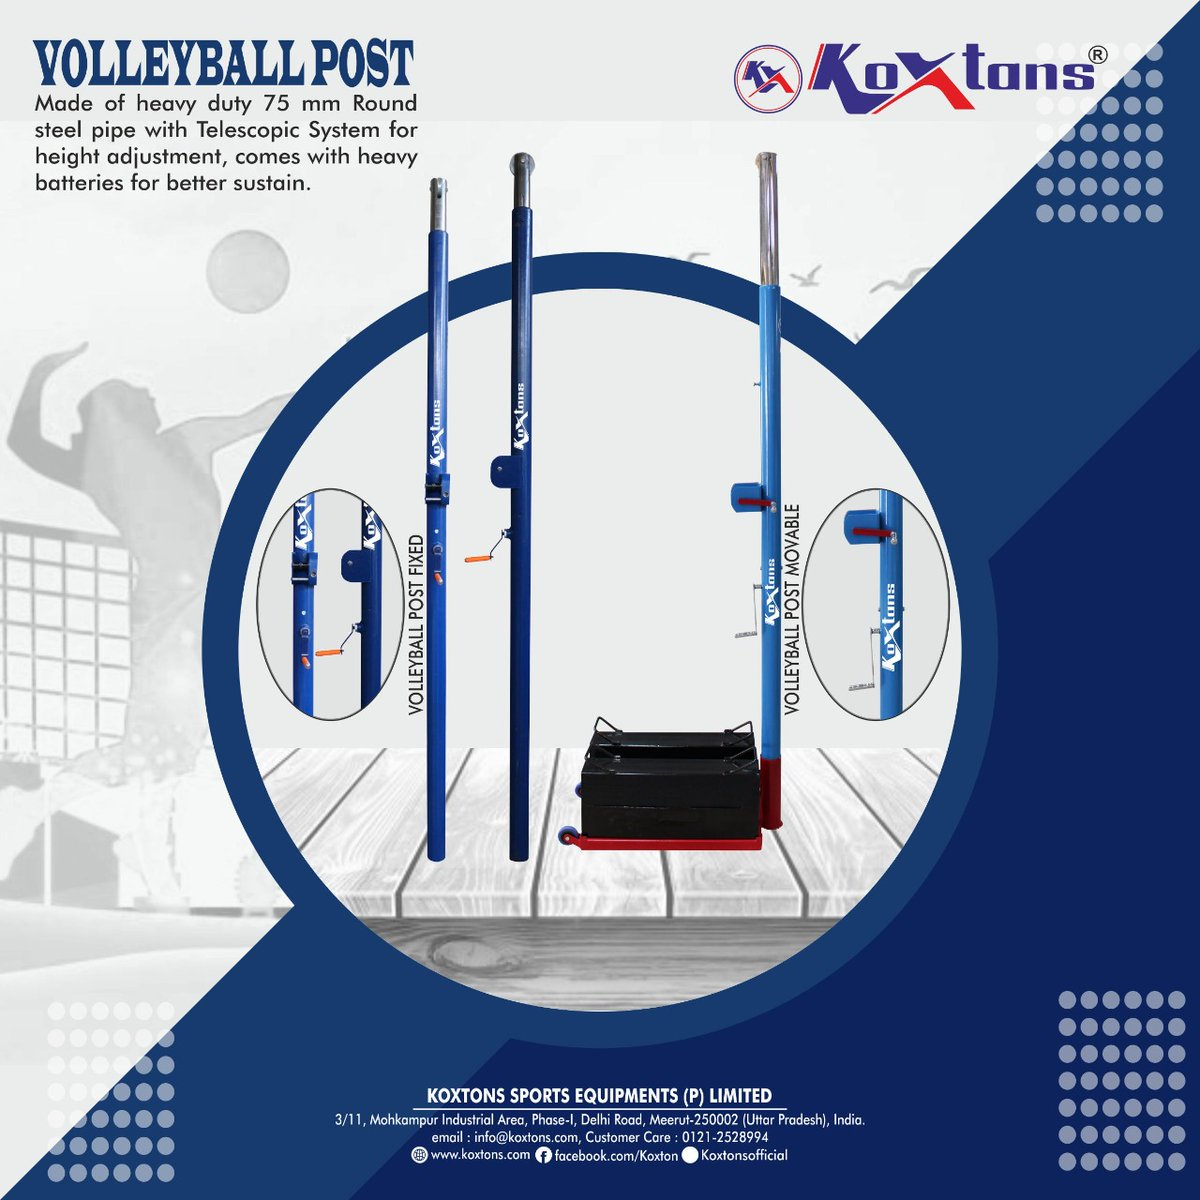 Durability, Performance and Ease-of-Use, the KOXTONS Volleyball Post is one of the best options, Ideal for school, club or college programs, Tournaments and large practice spaces.  Visit https://t.co/lMNXHnQaNt /DM on 9068811125  #volleyballpost  #outdoorgames #outdoorsports https://t.co/WwBMa0kyjW